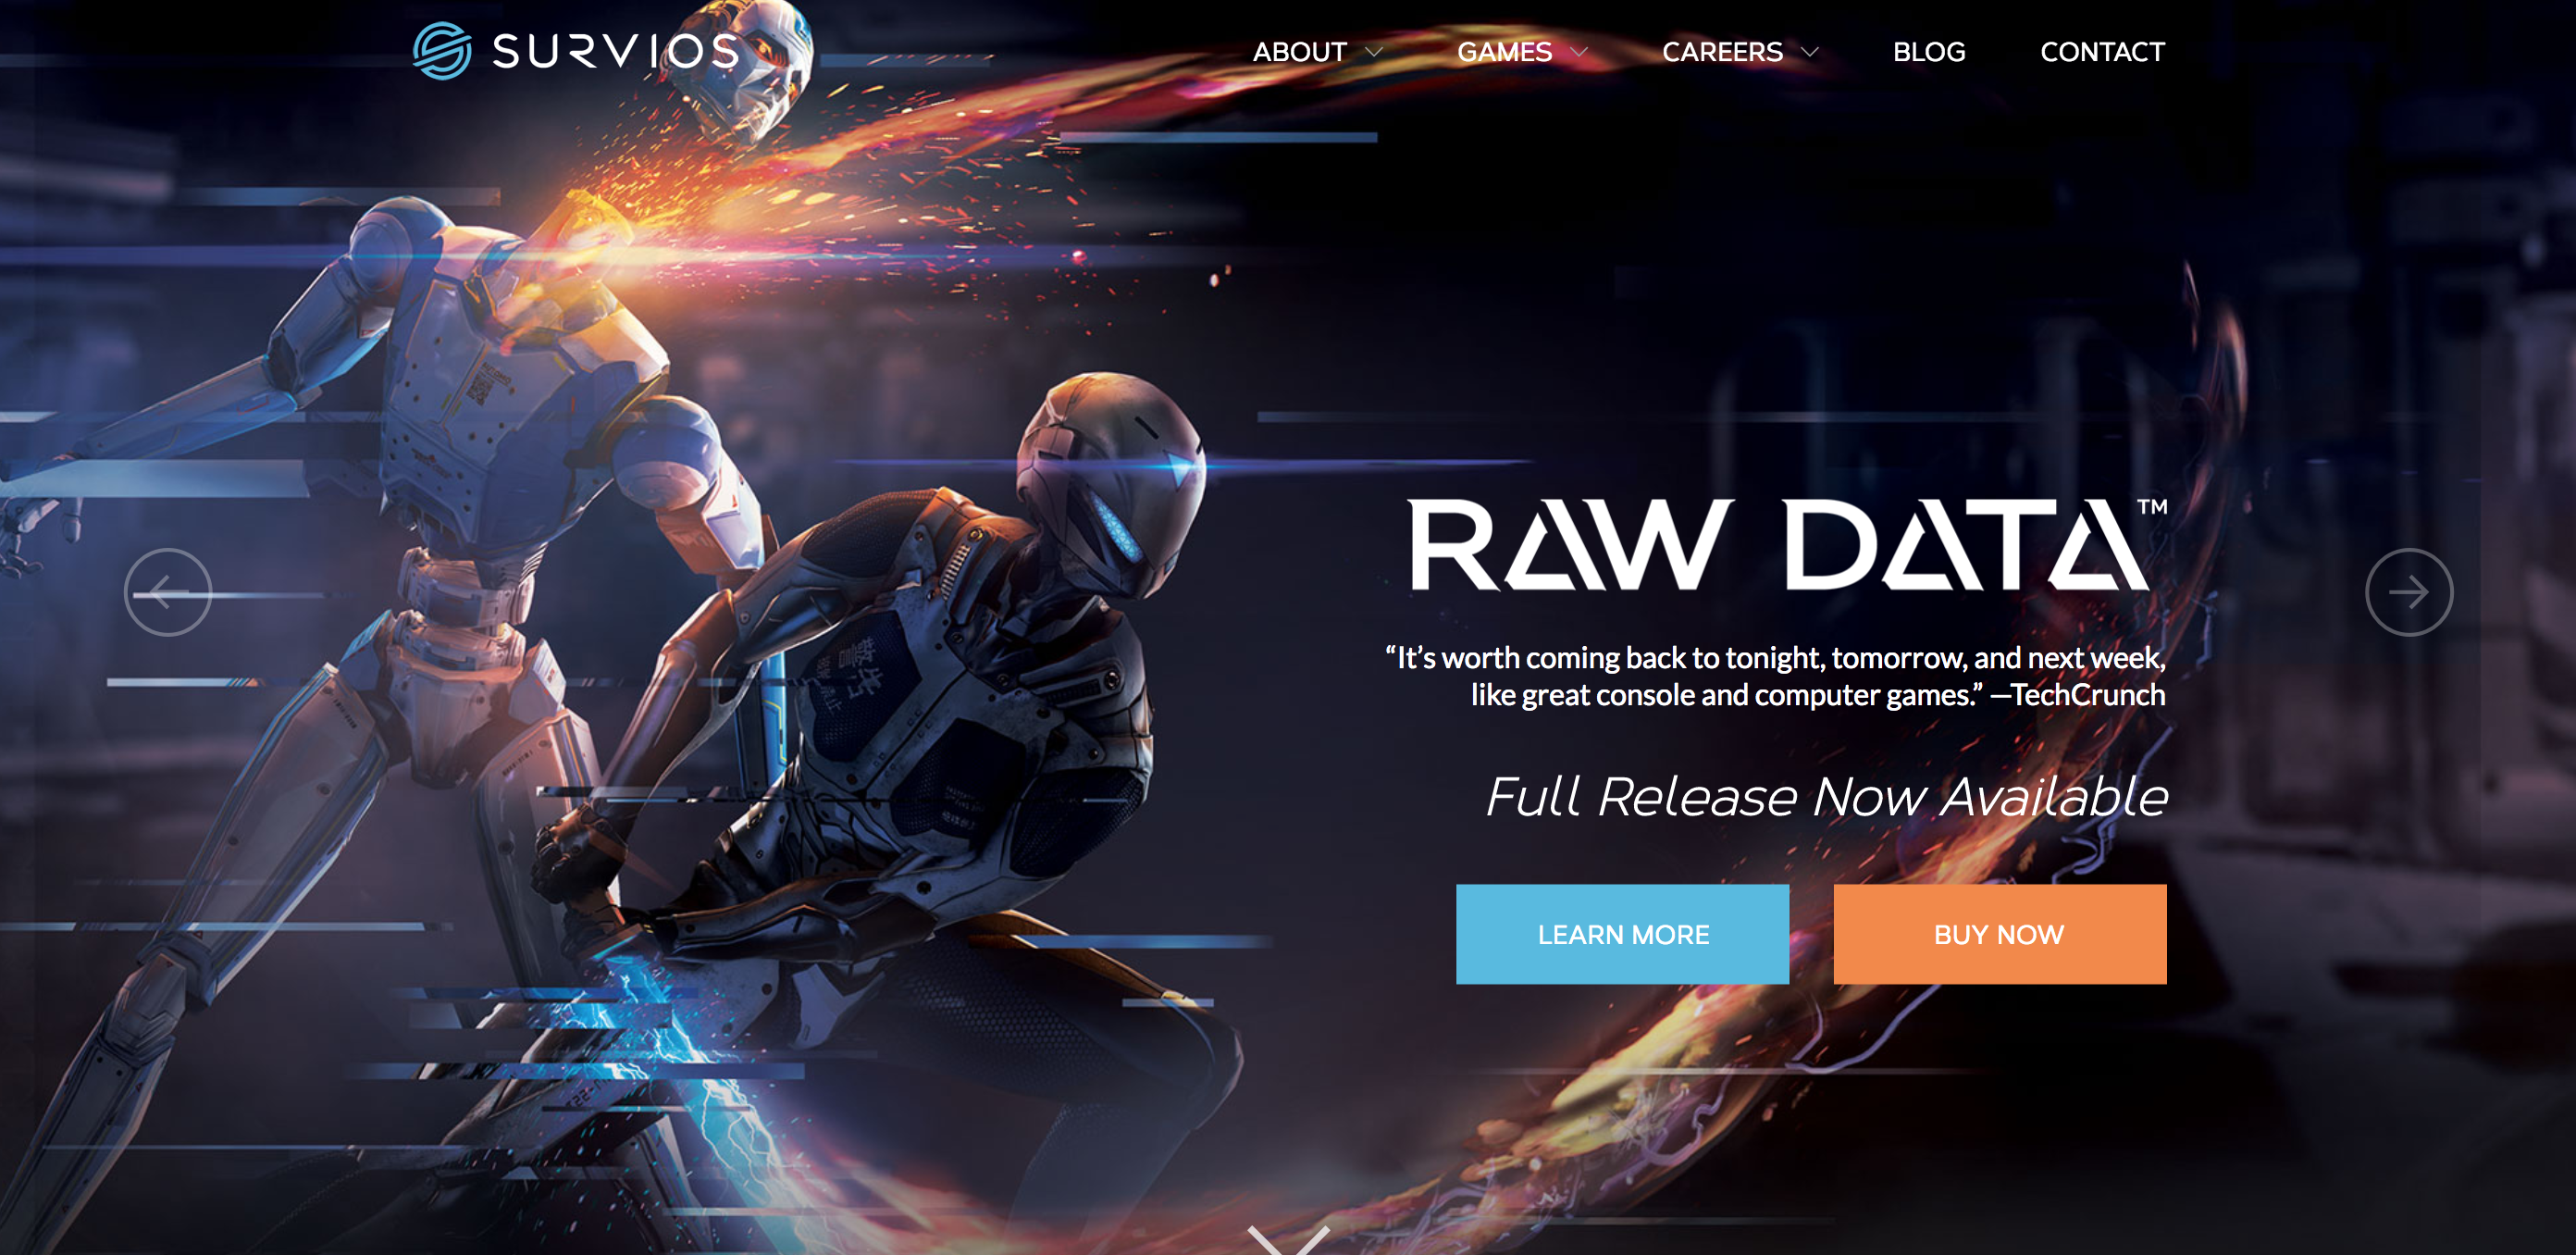 Raw Data Survios